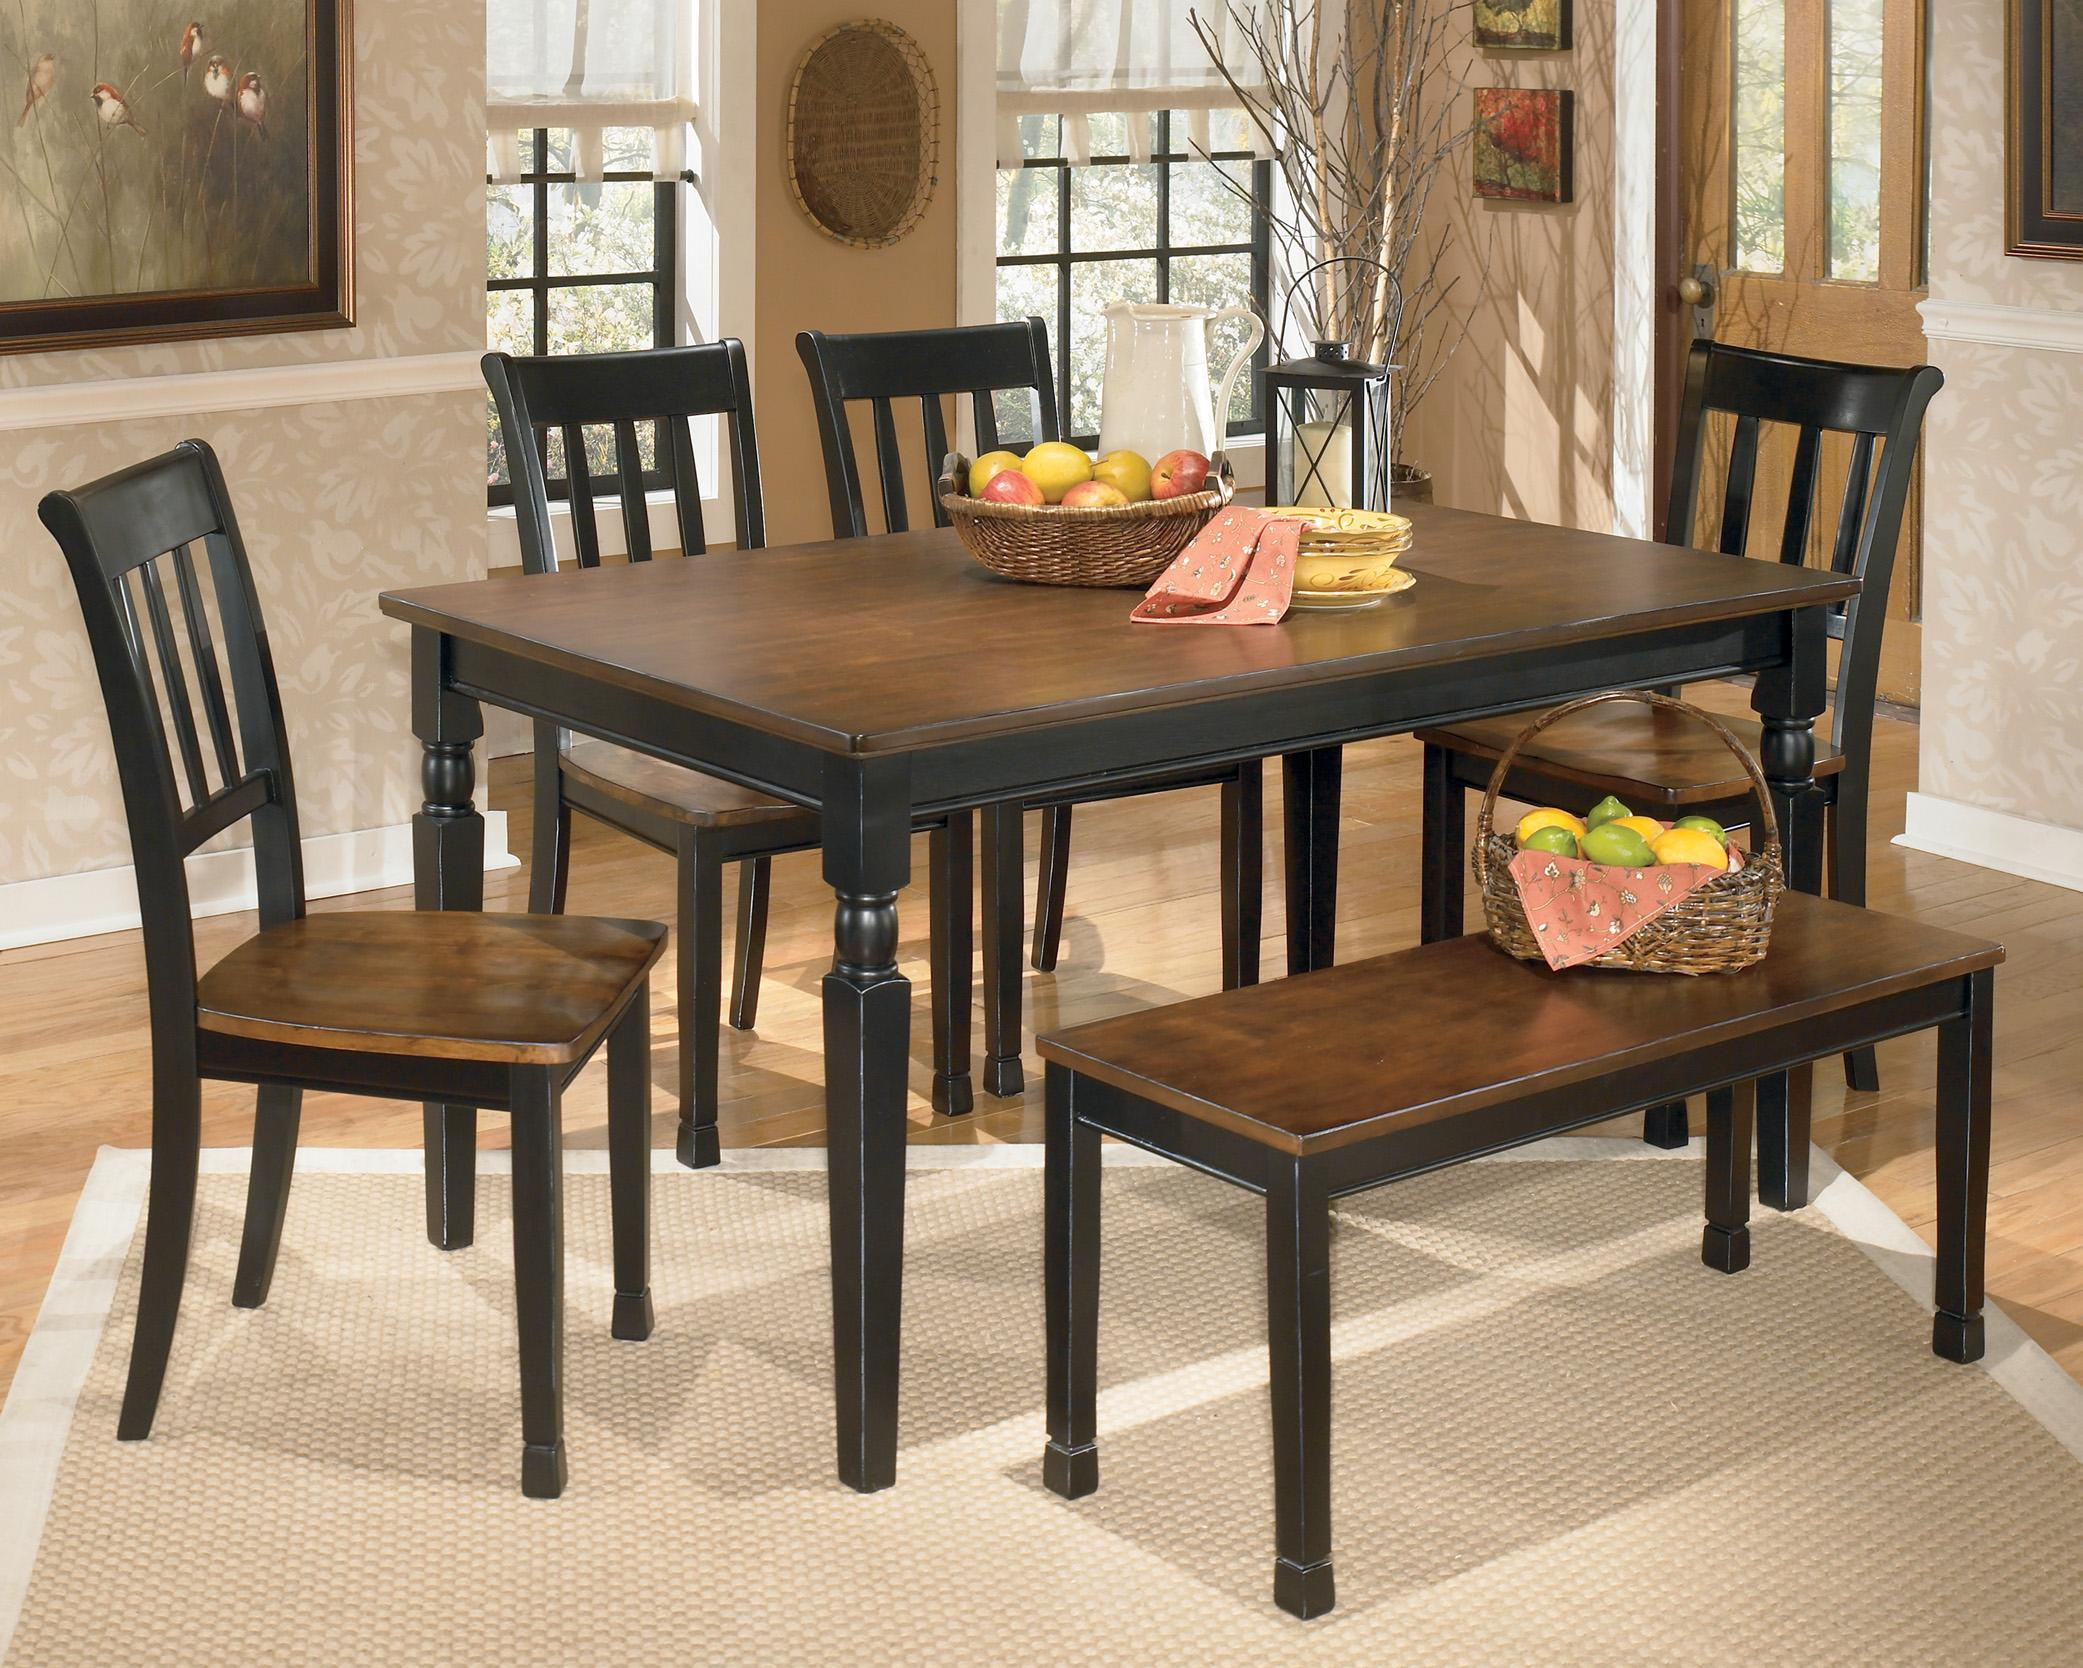 Owingsville 6-Piece Rectangular Table Set with Bench by Ashley (Signature Design) at Johnny Janosik